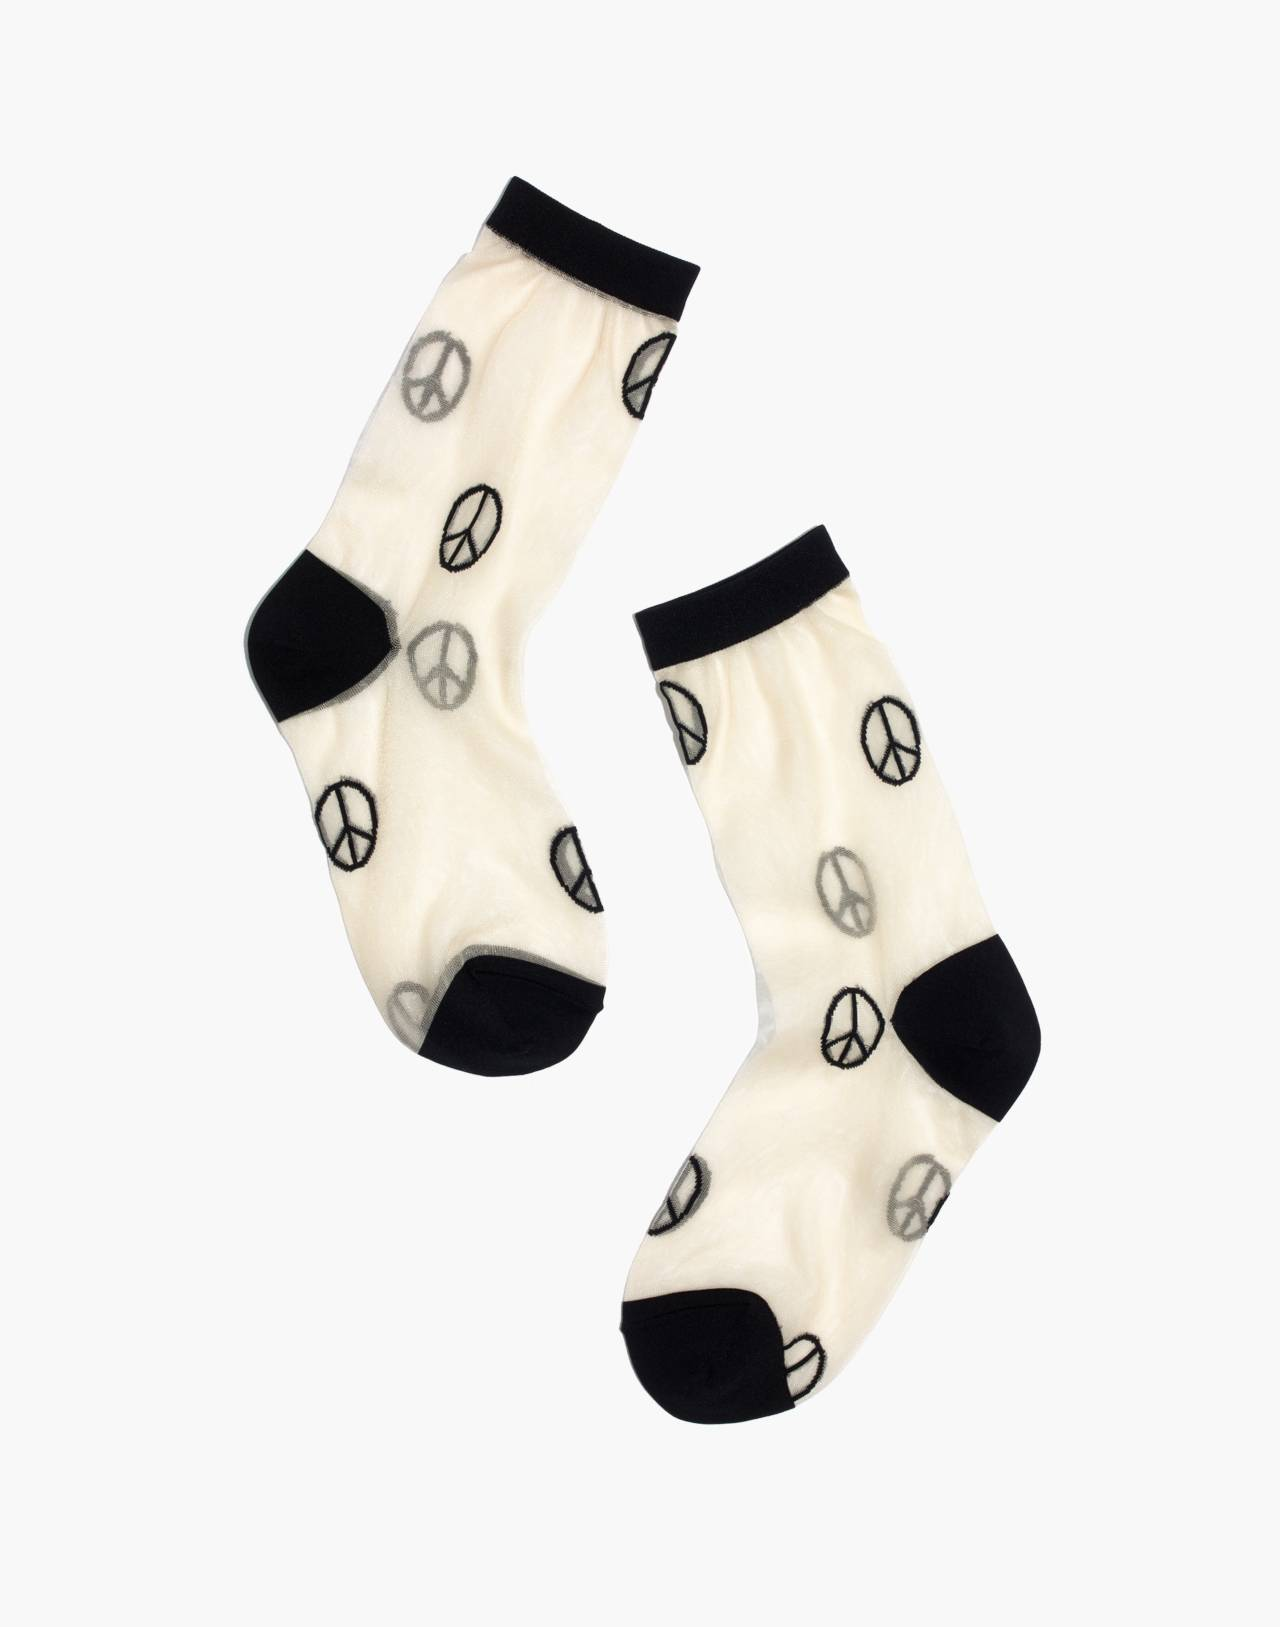 Madewell x Hansel from Basel™ Sheer Crew Socks in Peace Signs in peace sign multi image 1